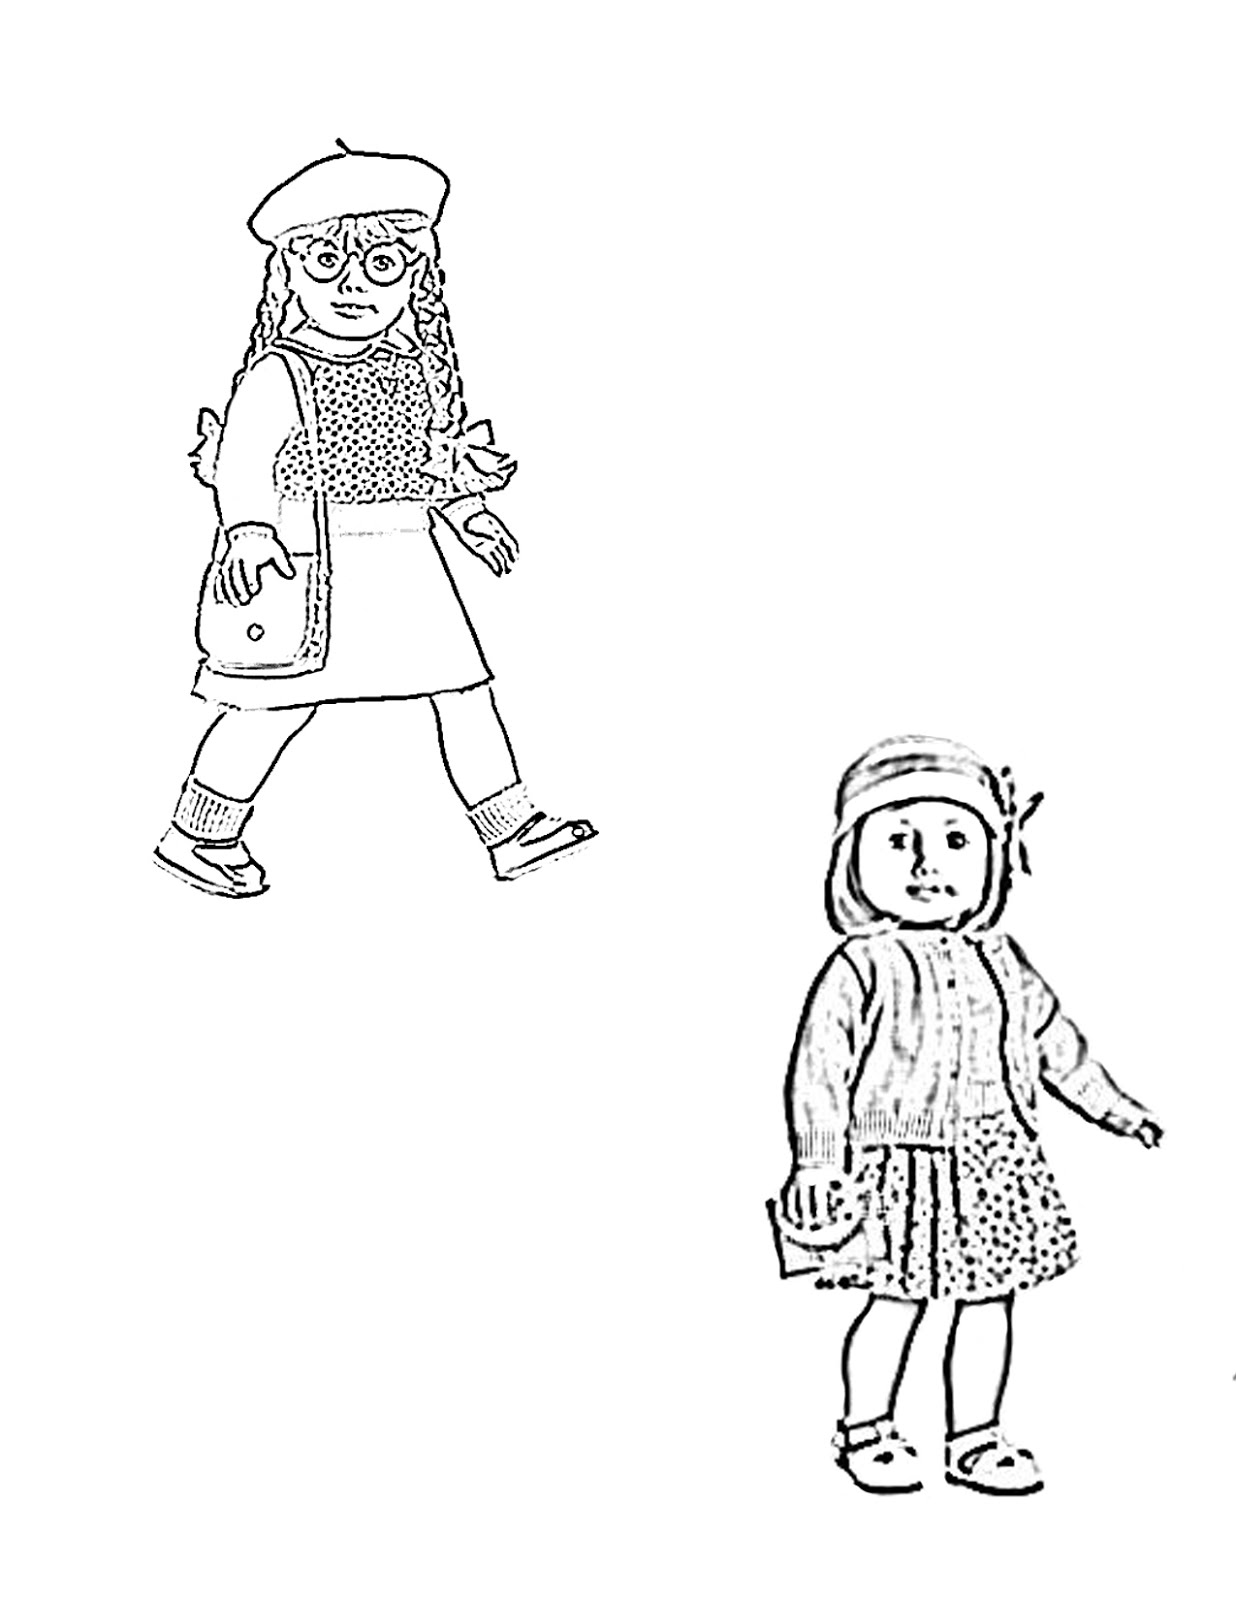 american girl coloring page american girl coloring pages isabelle at getcoloringscom girl coloring american page